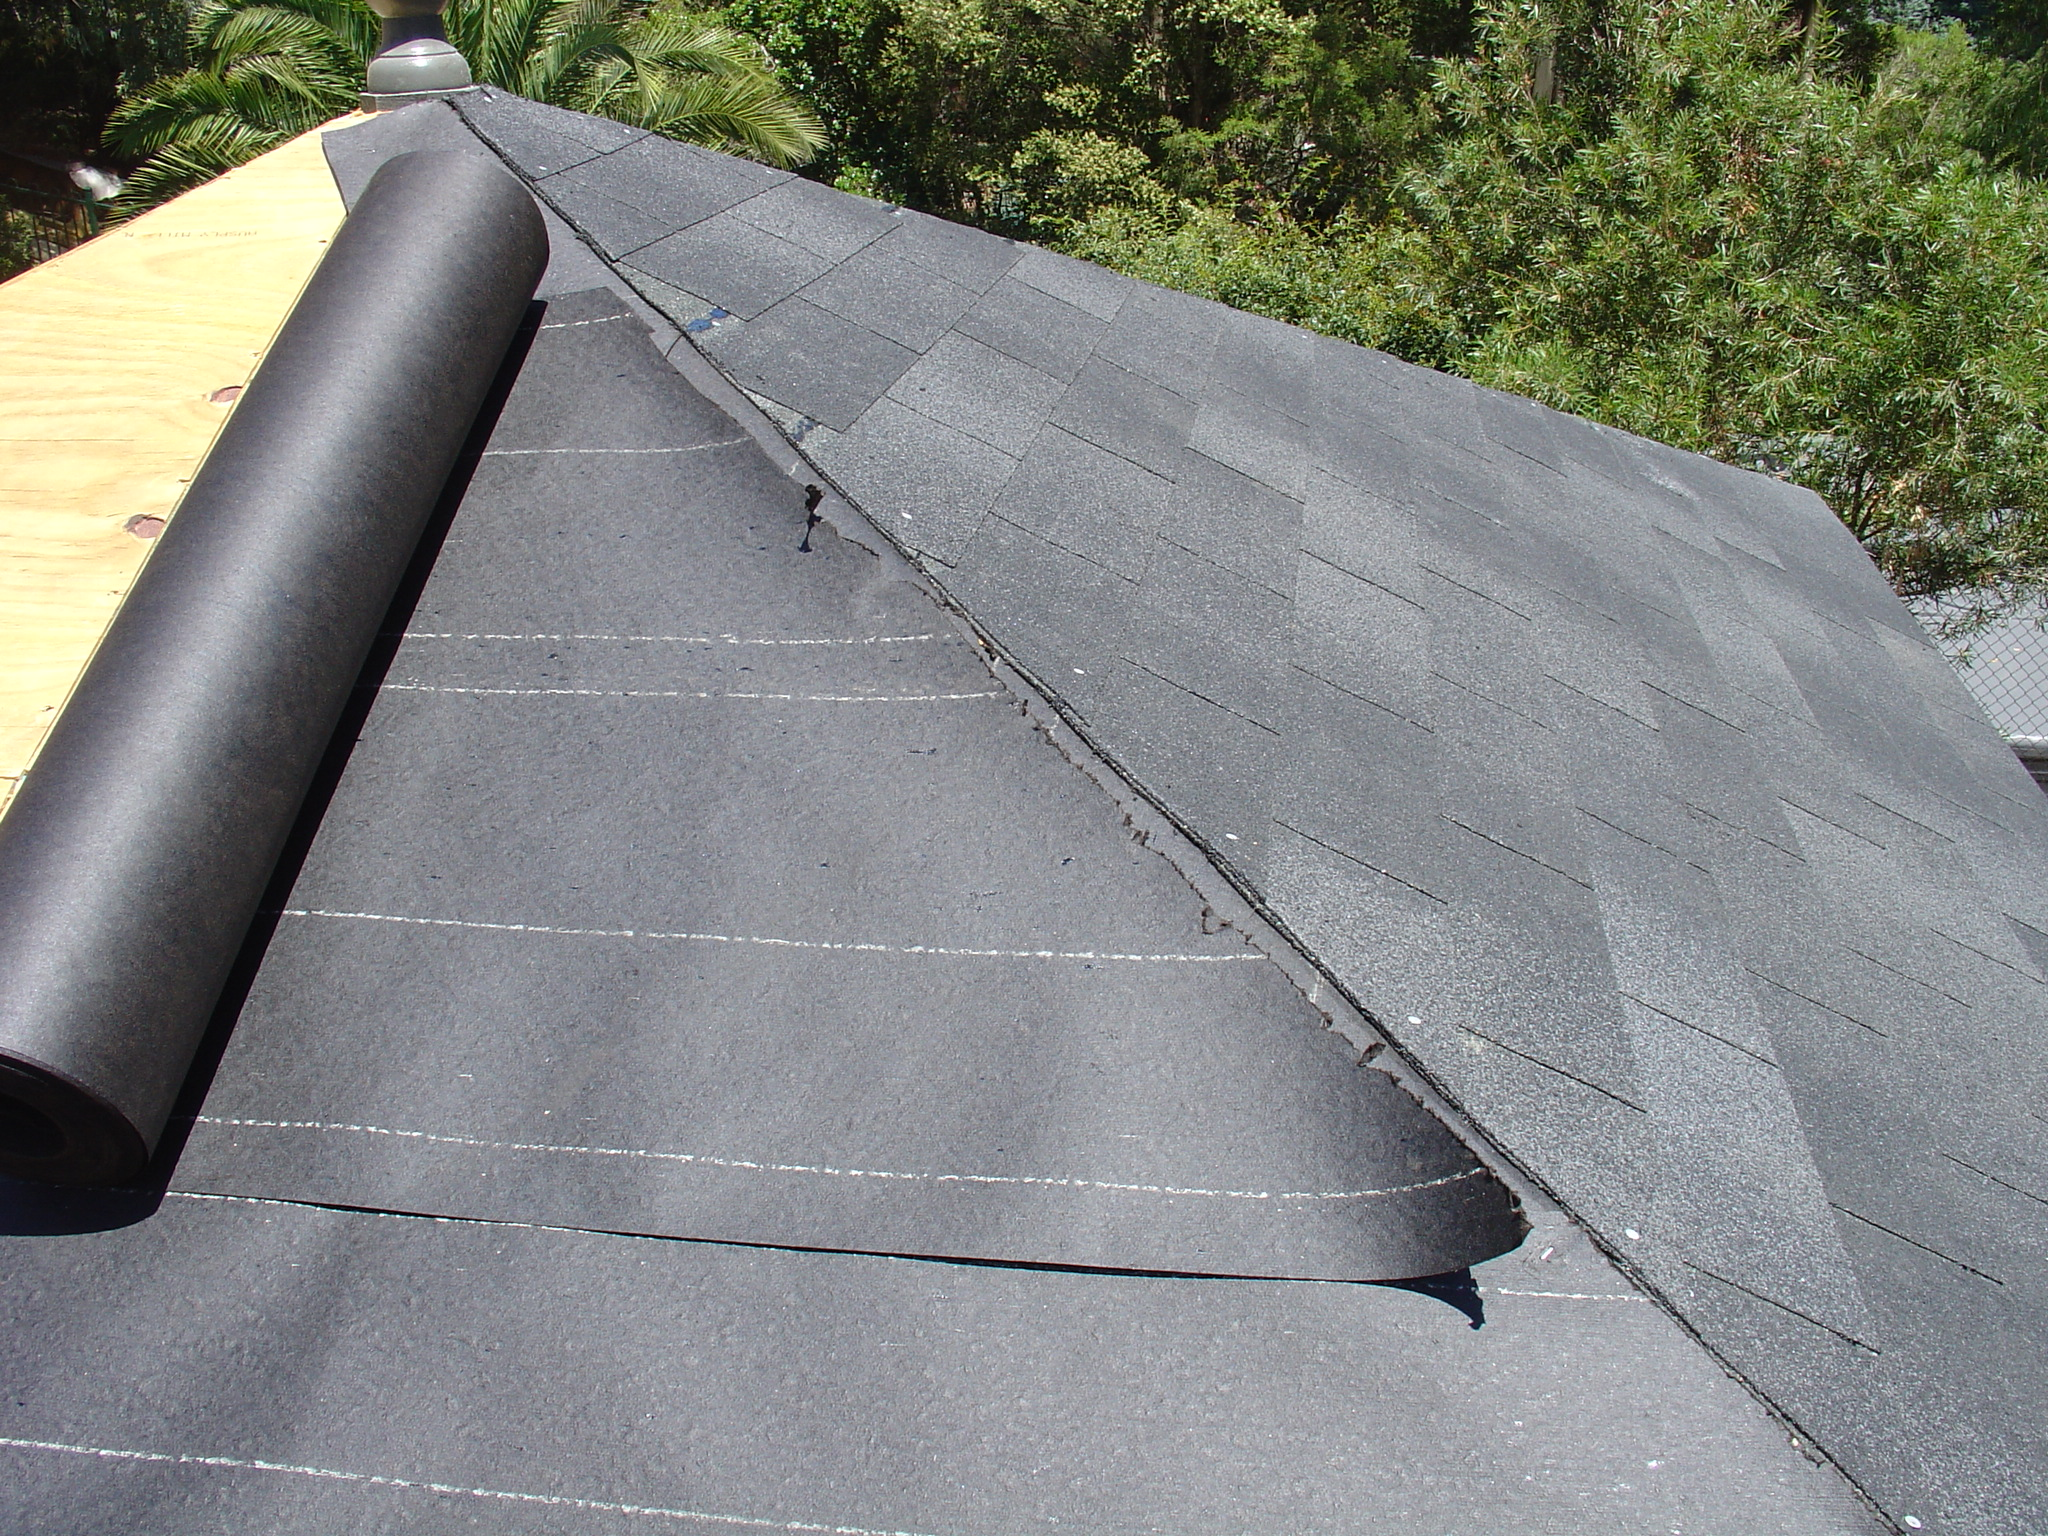 ... Also Afterwards As Additional Sheathing Protection From Wind Driven  Rain. 15lb Felt Is Commonly Sufficient For Most Fiberglass/asphalt Shingle  Roofs, ...